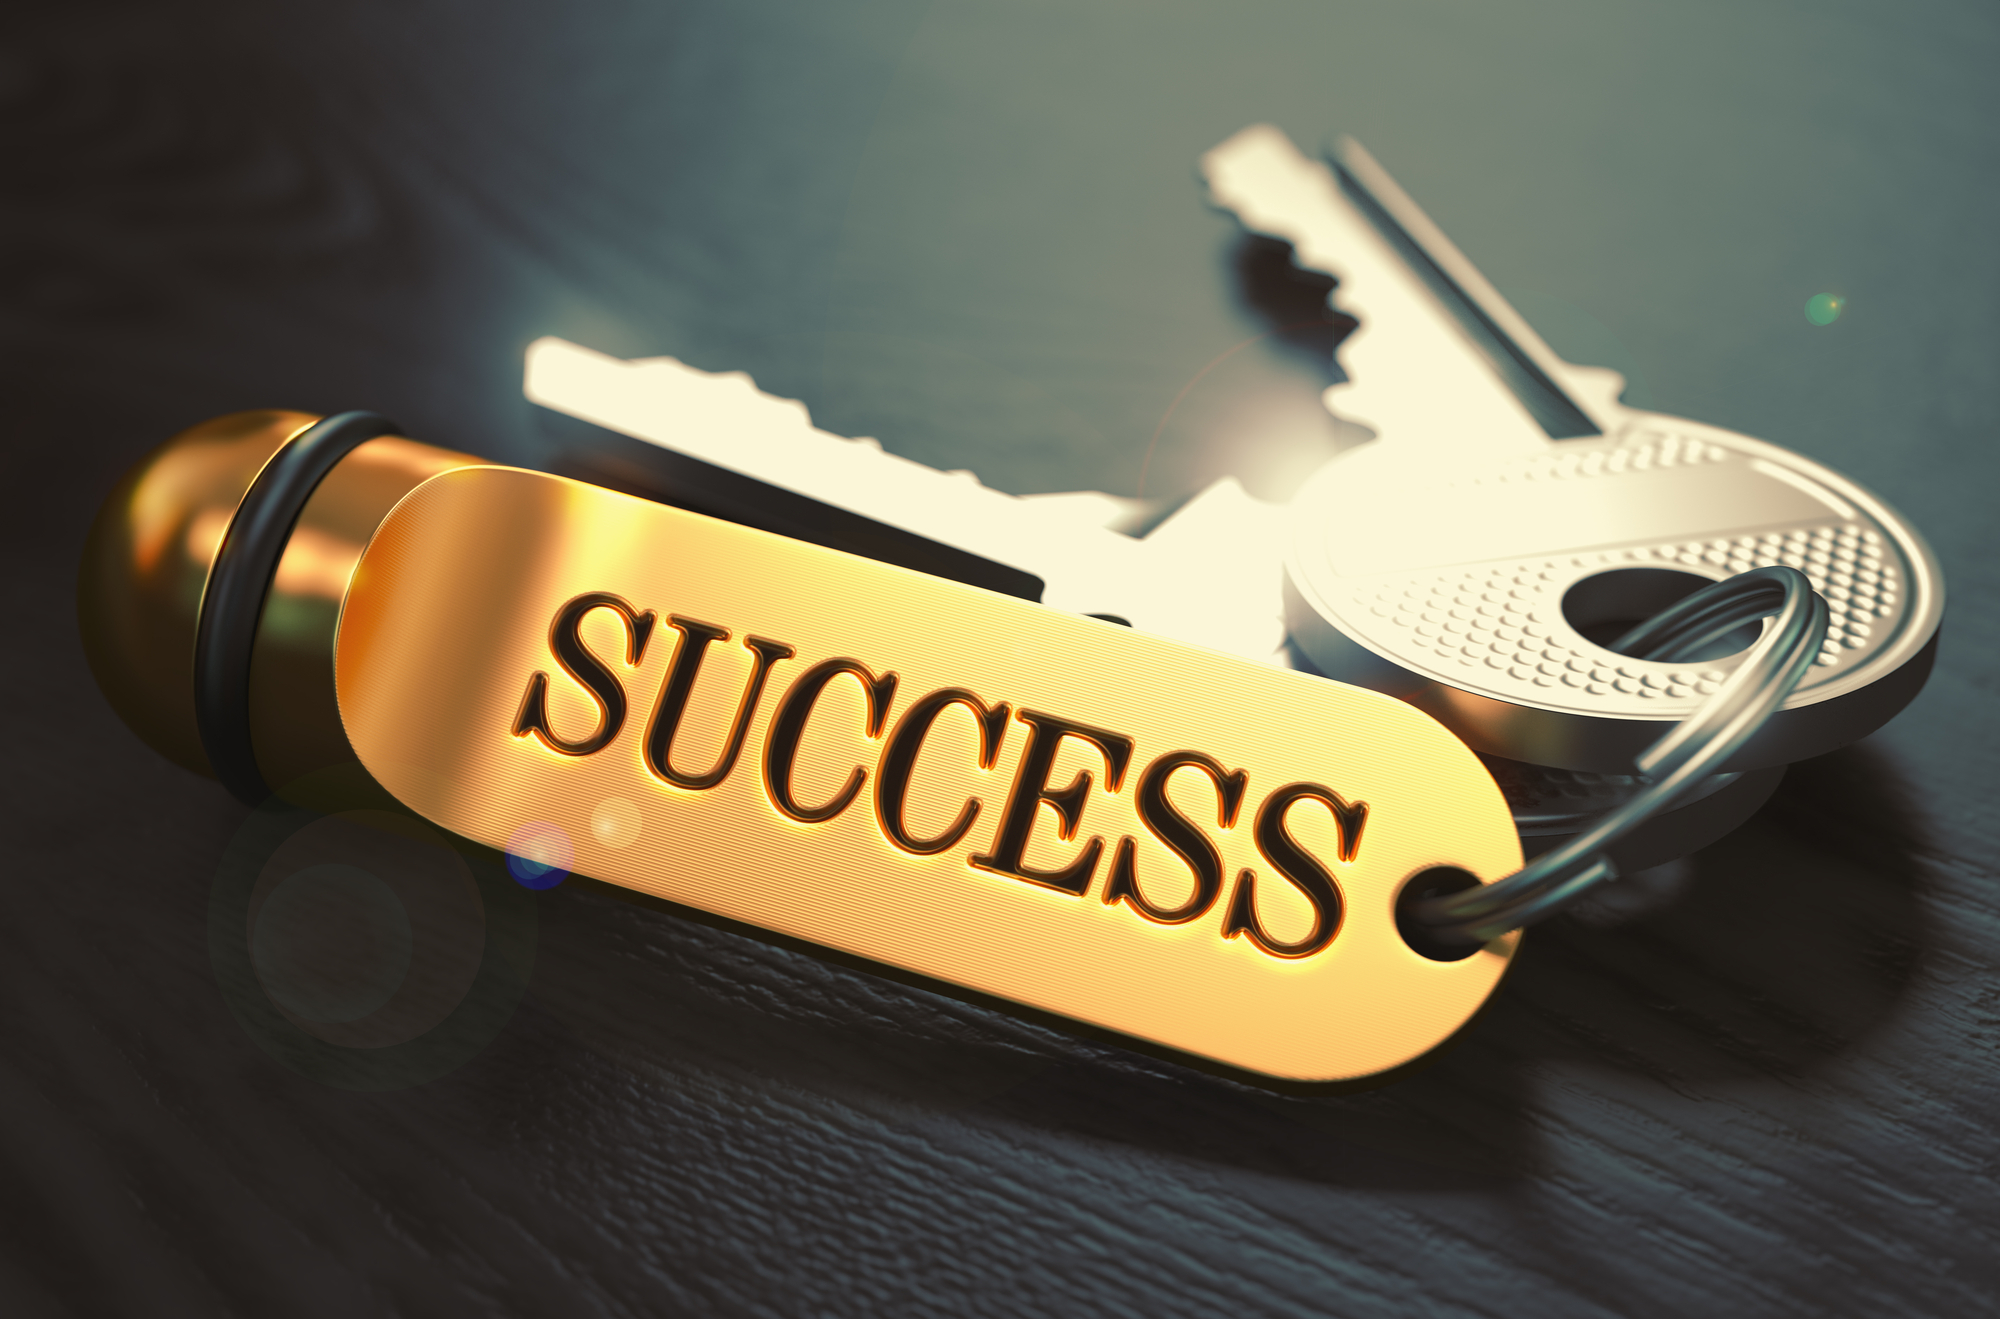 Keys to Success. Concept on Golden Keychain